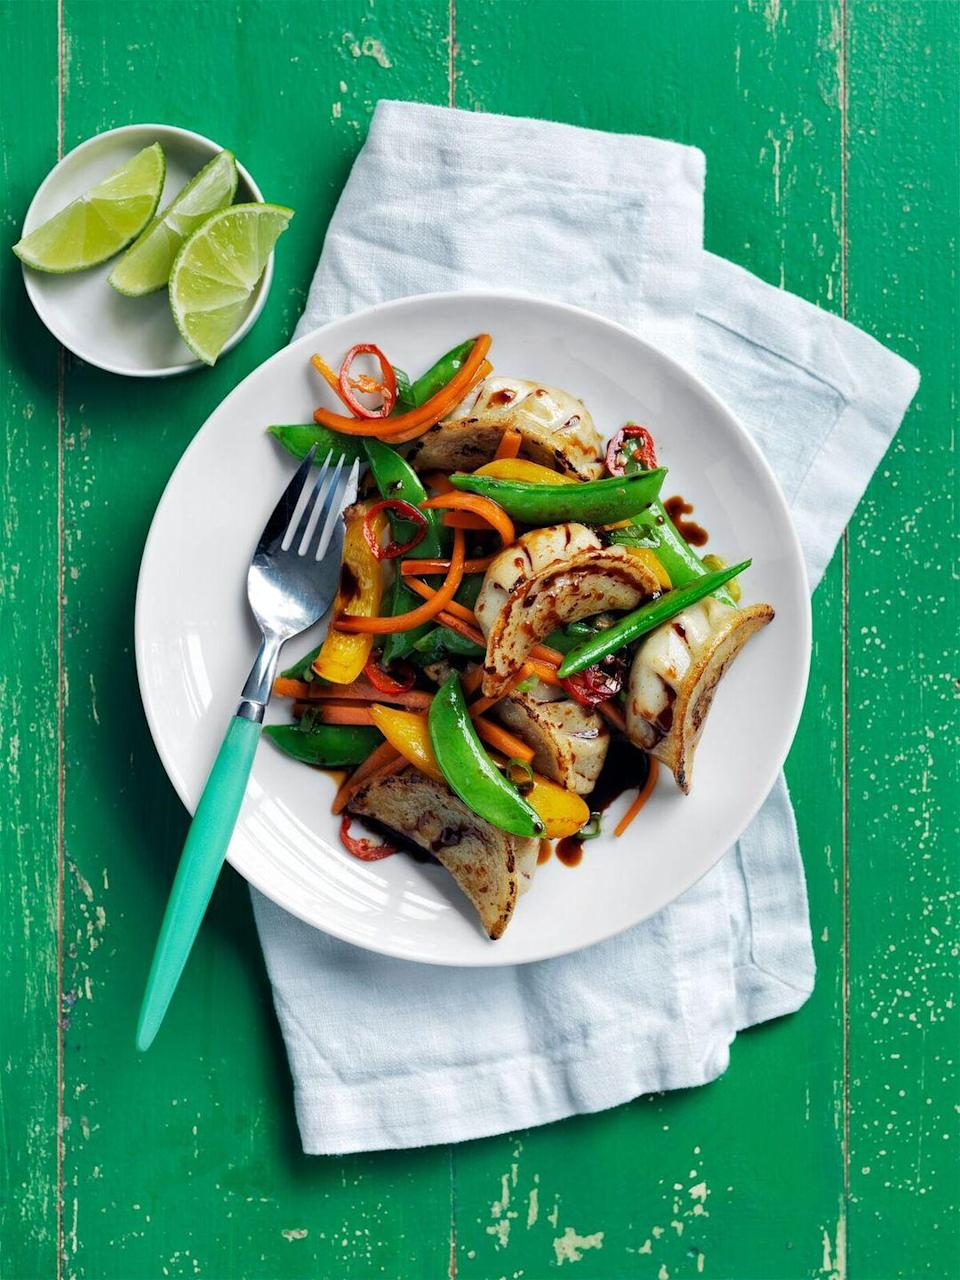 """<p>Toss together this semi-homemade, meatless main in under 30 minutes.</p><p><a href=""""https://www.womansday.com/food-recipes/food-drinks/recipes/a55780/potsticker-stir-fry-recipe/"""" rel=""""nofollow noopener"""" target=""""_blank"""" data-ylk=""""slk:Get the Potsticker Stir-Fry recipe."""" class=""""link rapid-noclick-resp""""><em>Get the Potsticker Stir-Fry recipe.</em></a></p>"""